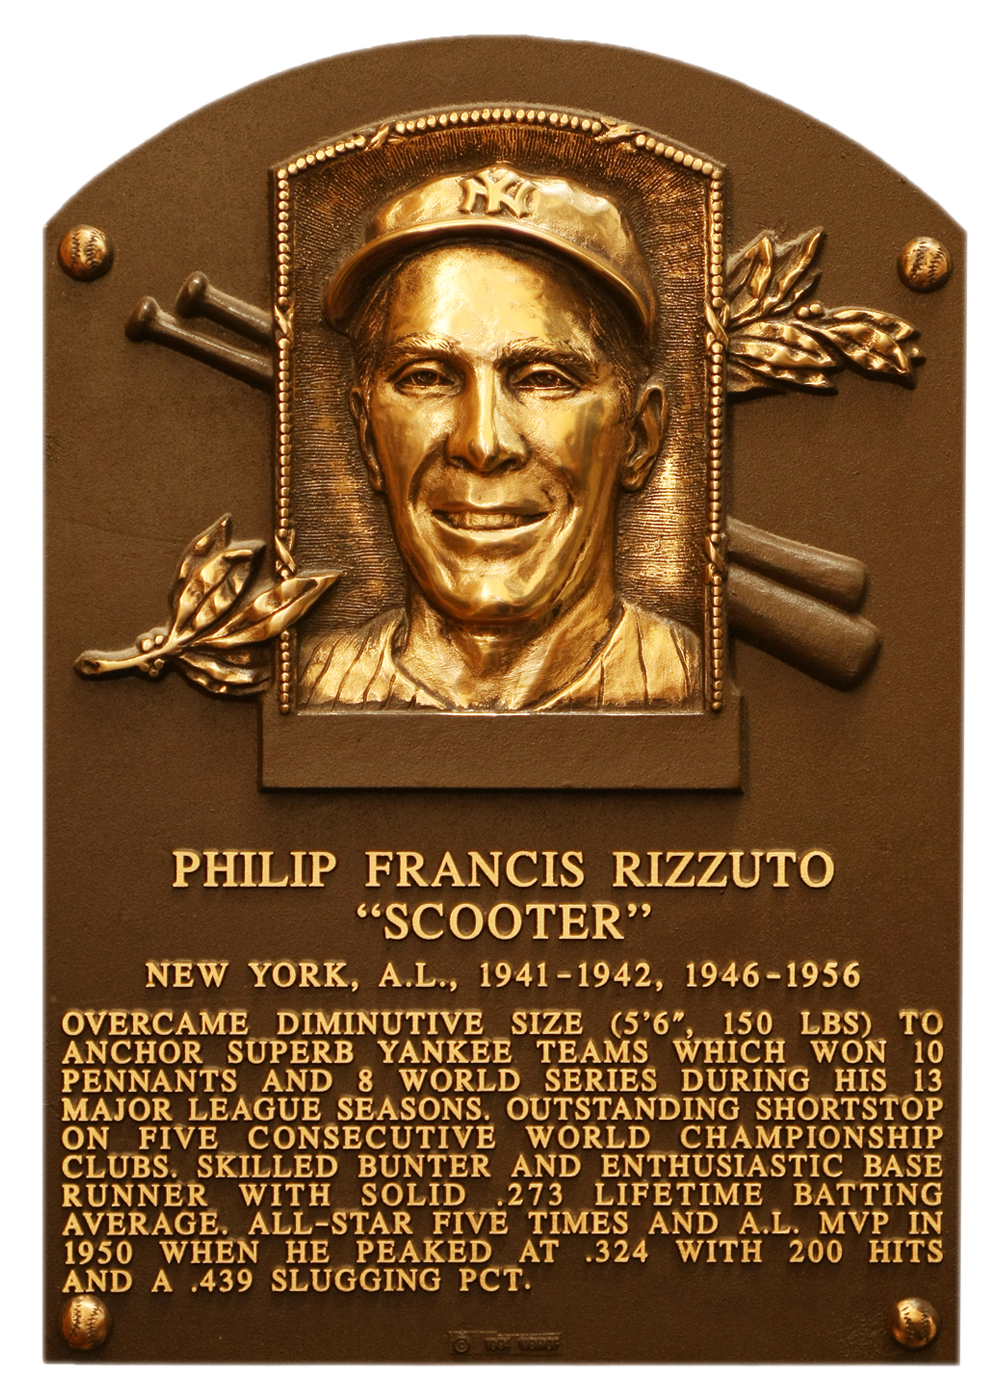 how tall is phil rizzuto